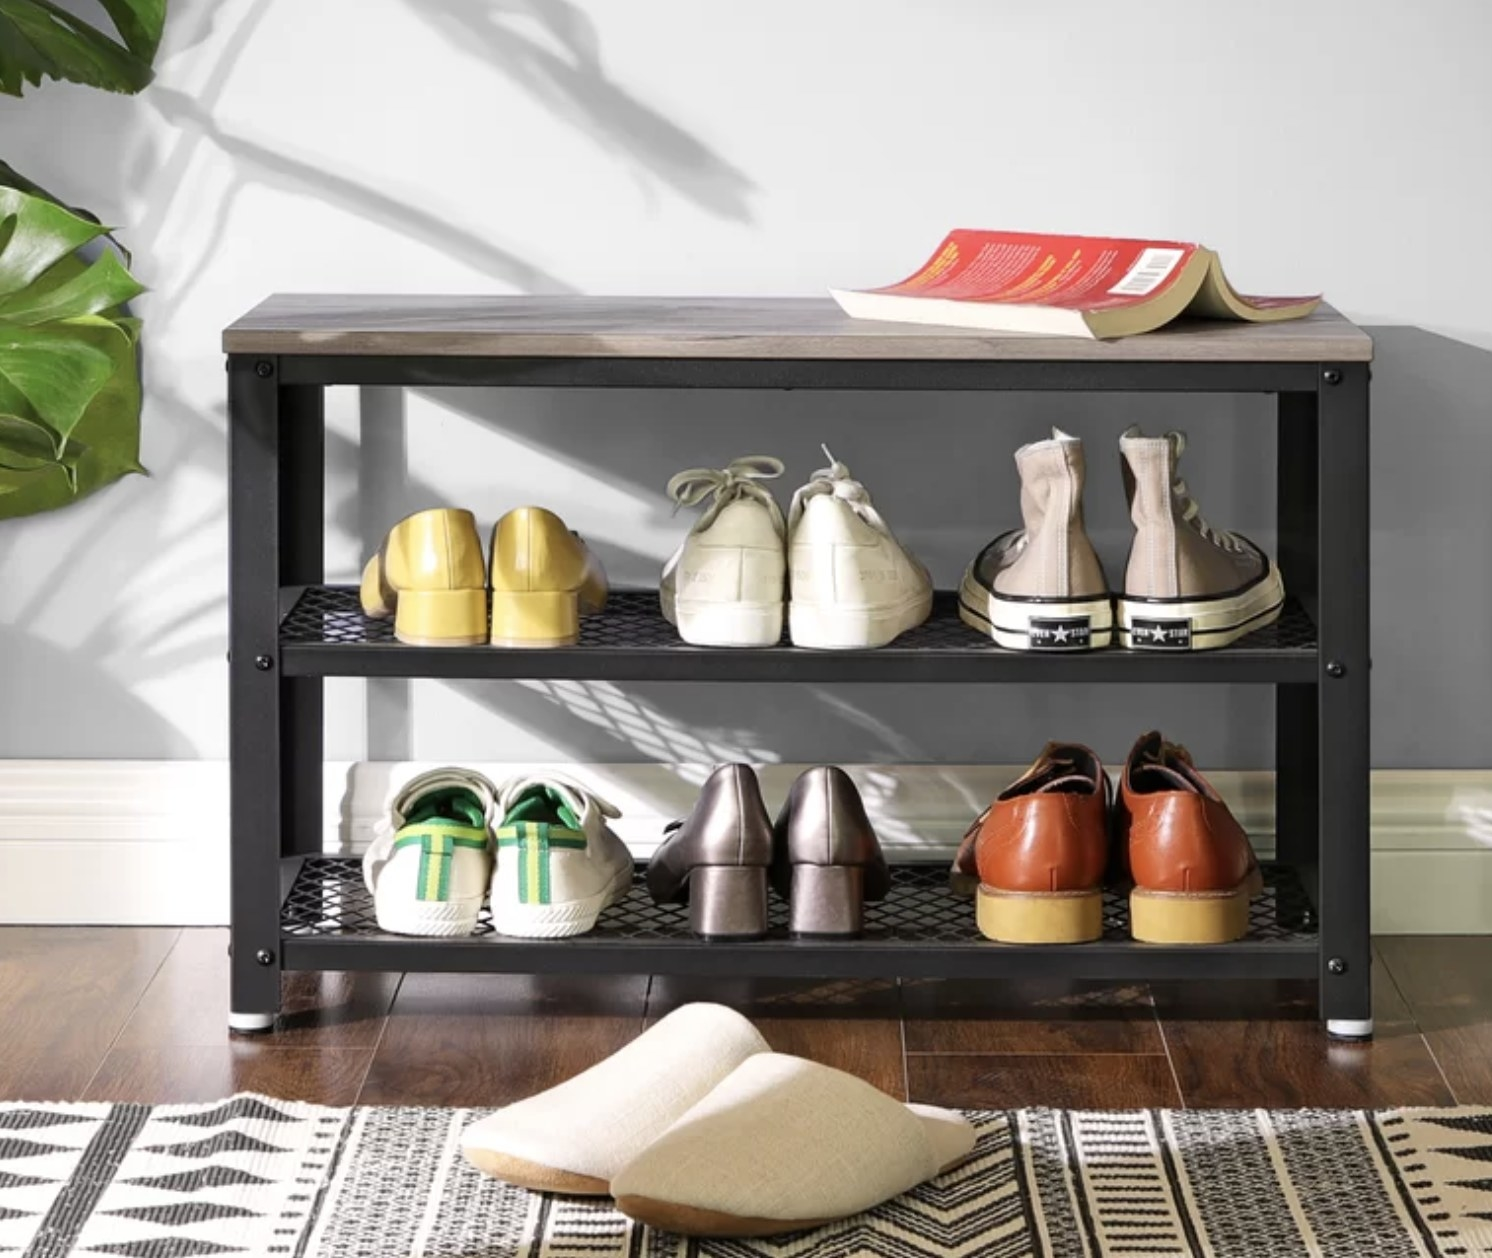 The storage bench with shoes in the shelves